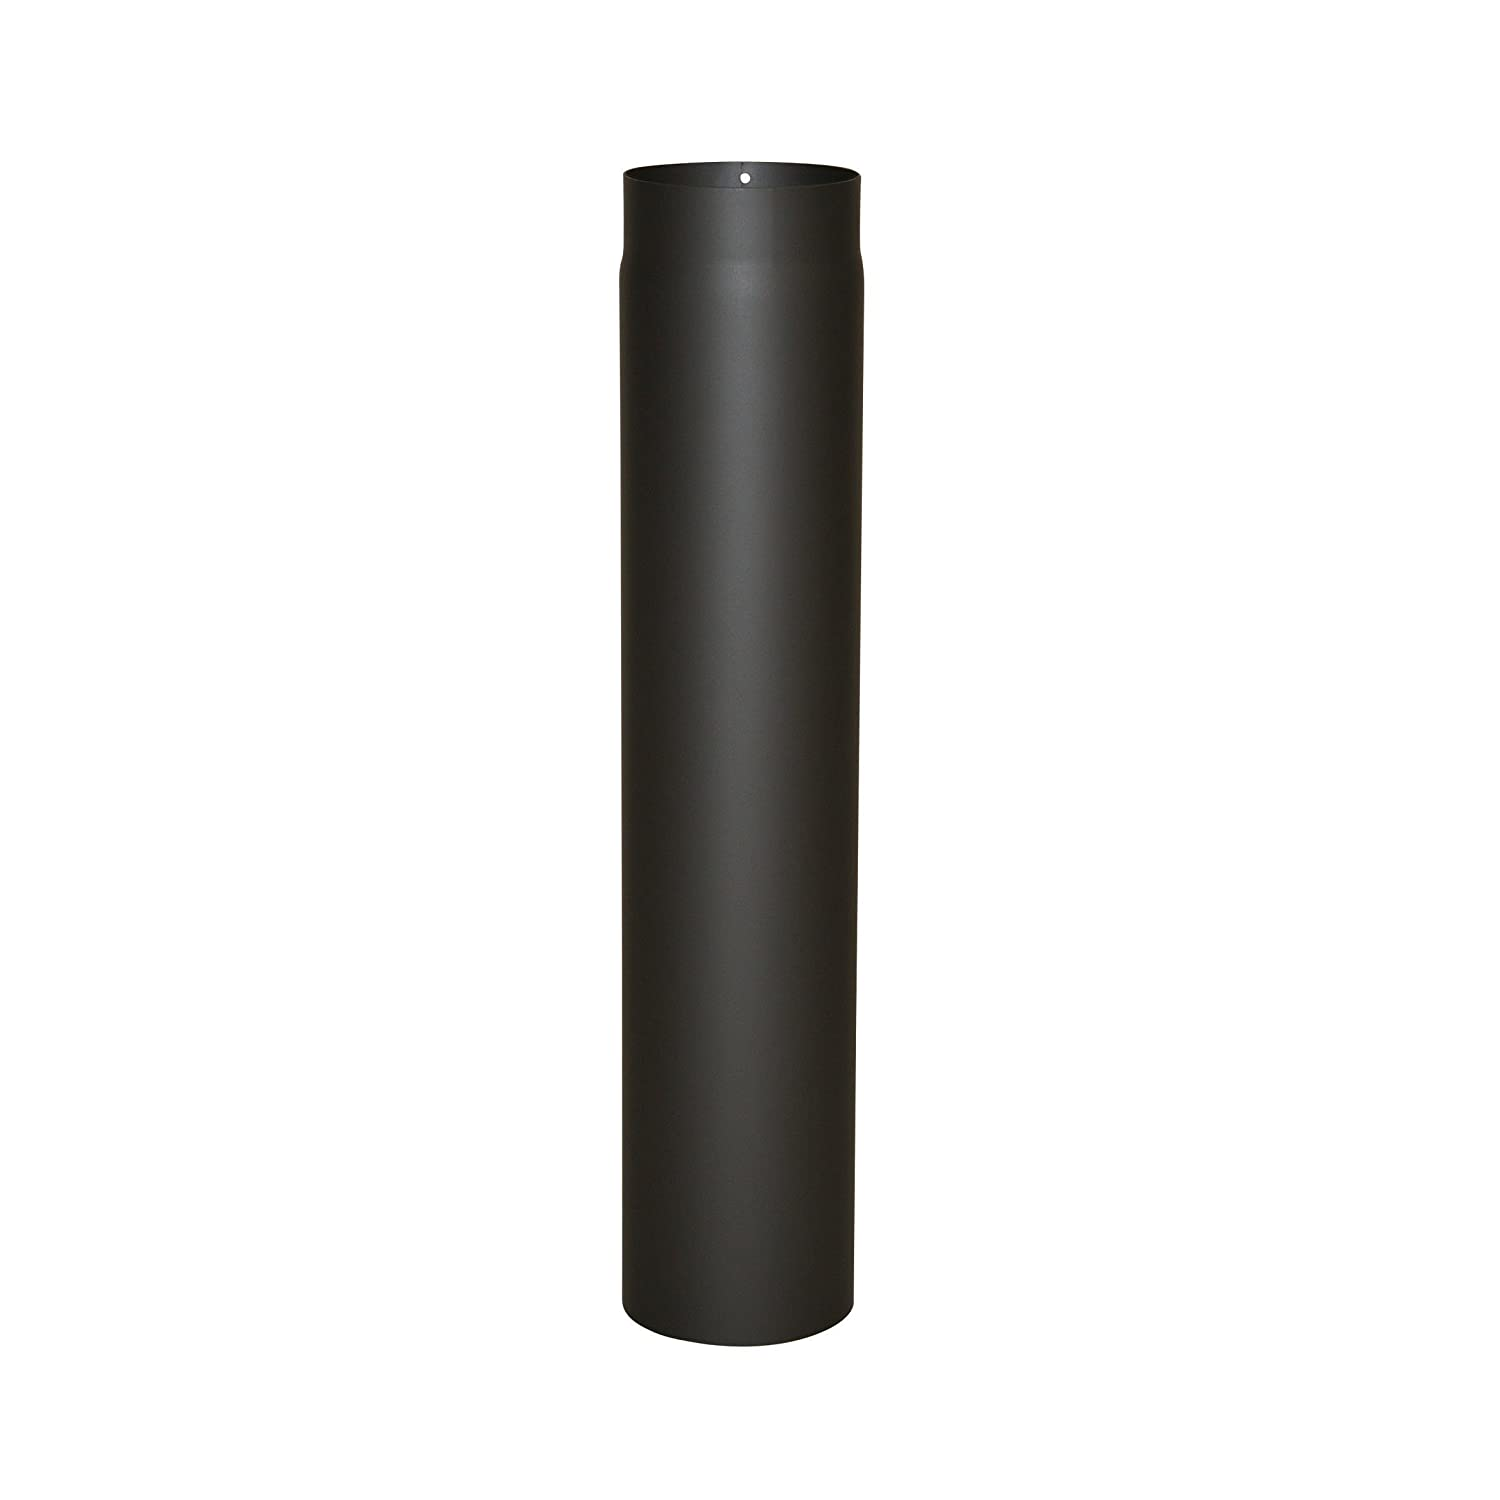 Kamino-Flam Ø 130 mm Steel Stove Pipe, Heat Resistant Senotherm Coating Flue Pipe for Stoves, approx. 750 mm Straight Length Chimney Pipe, Single Wall Pipe EN 1856-2 Standard, Black Kamino - Flam 331752